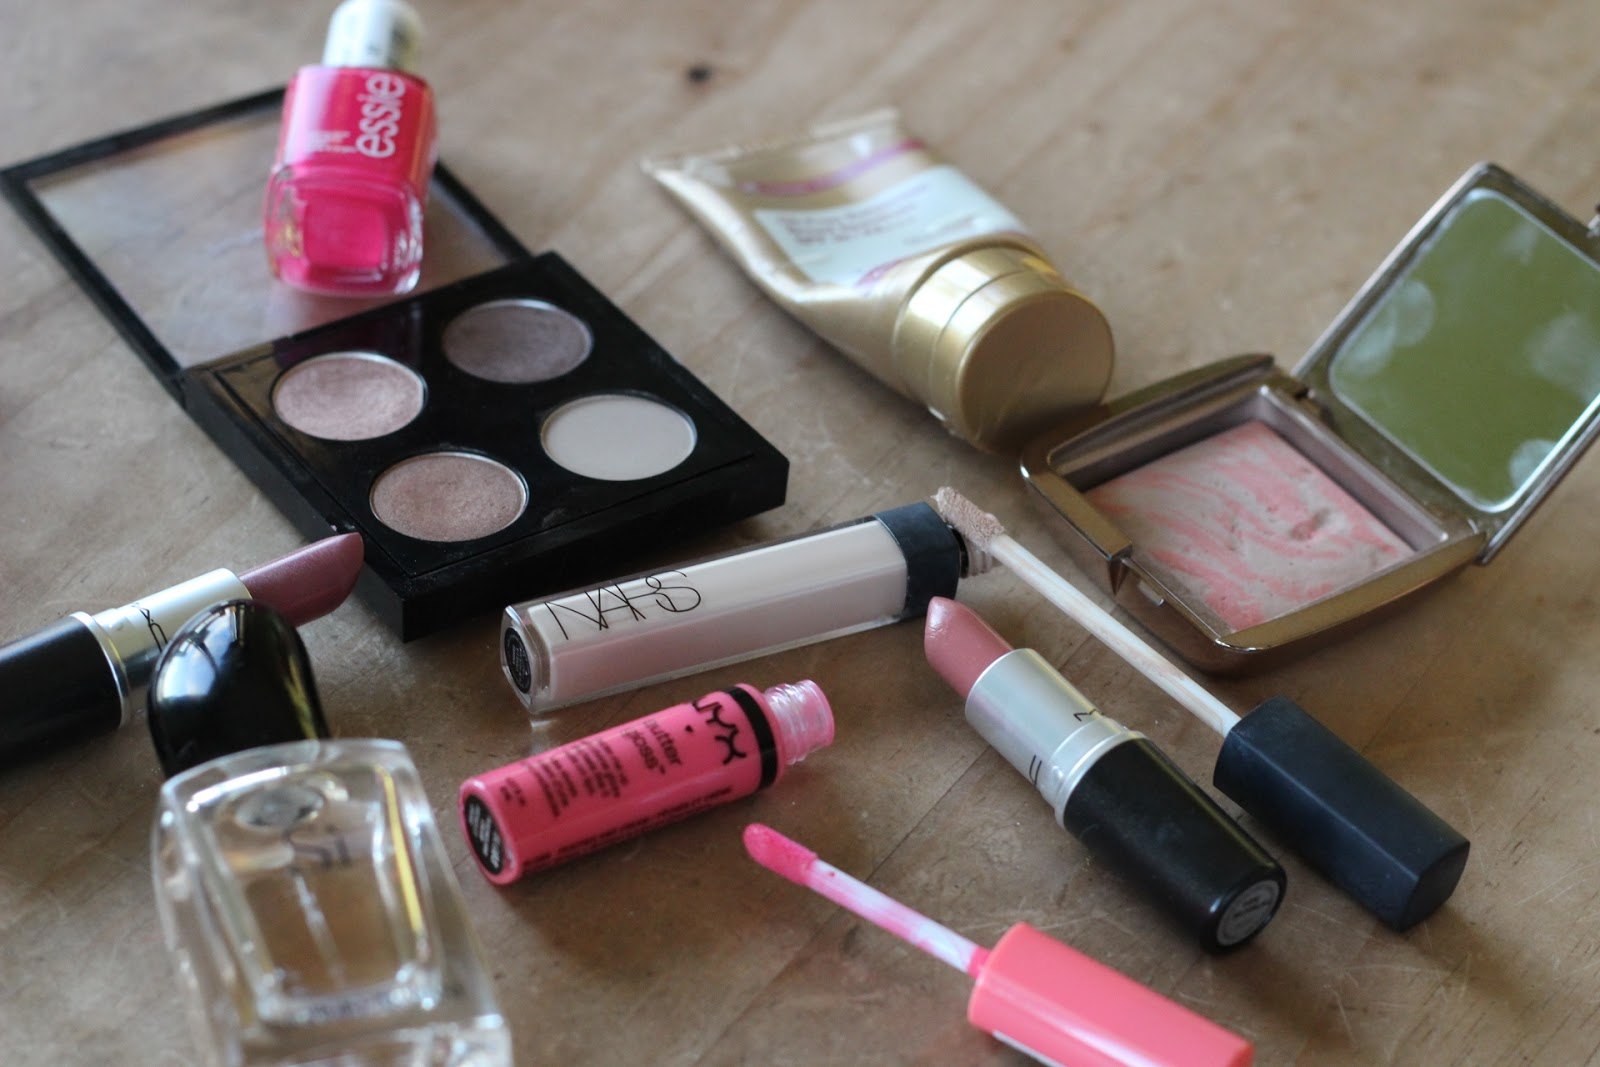 Top 14 Beauty Products Of 2014